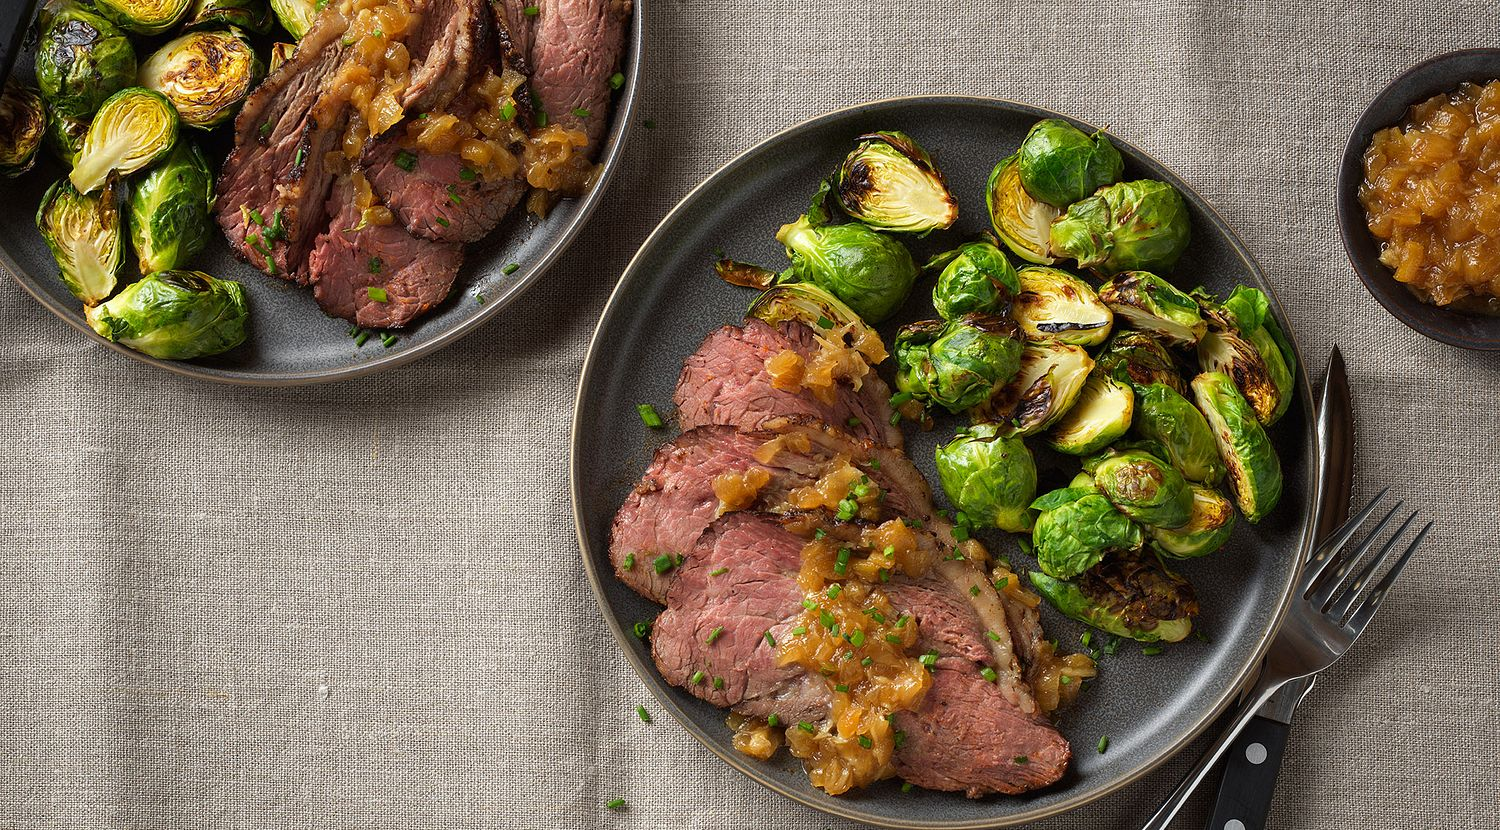 Red Eye-Rubbed Beef Sirloin Cap Roast with Roasted Garlic and Caramelized Onion Jam